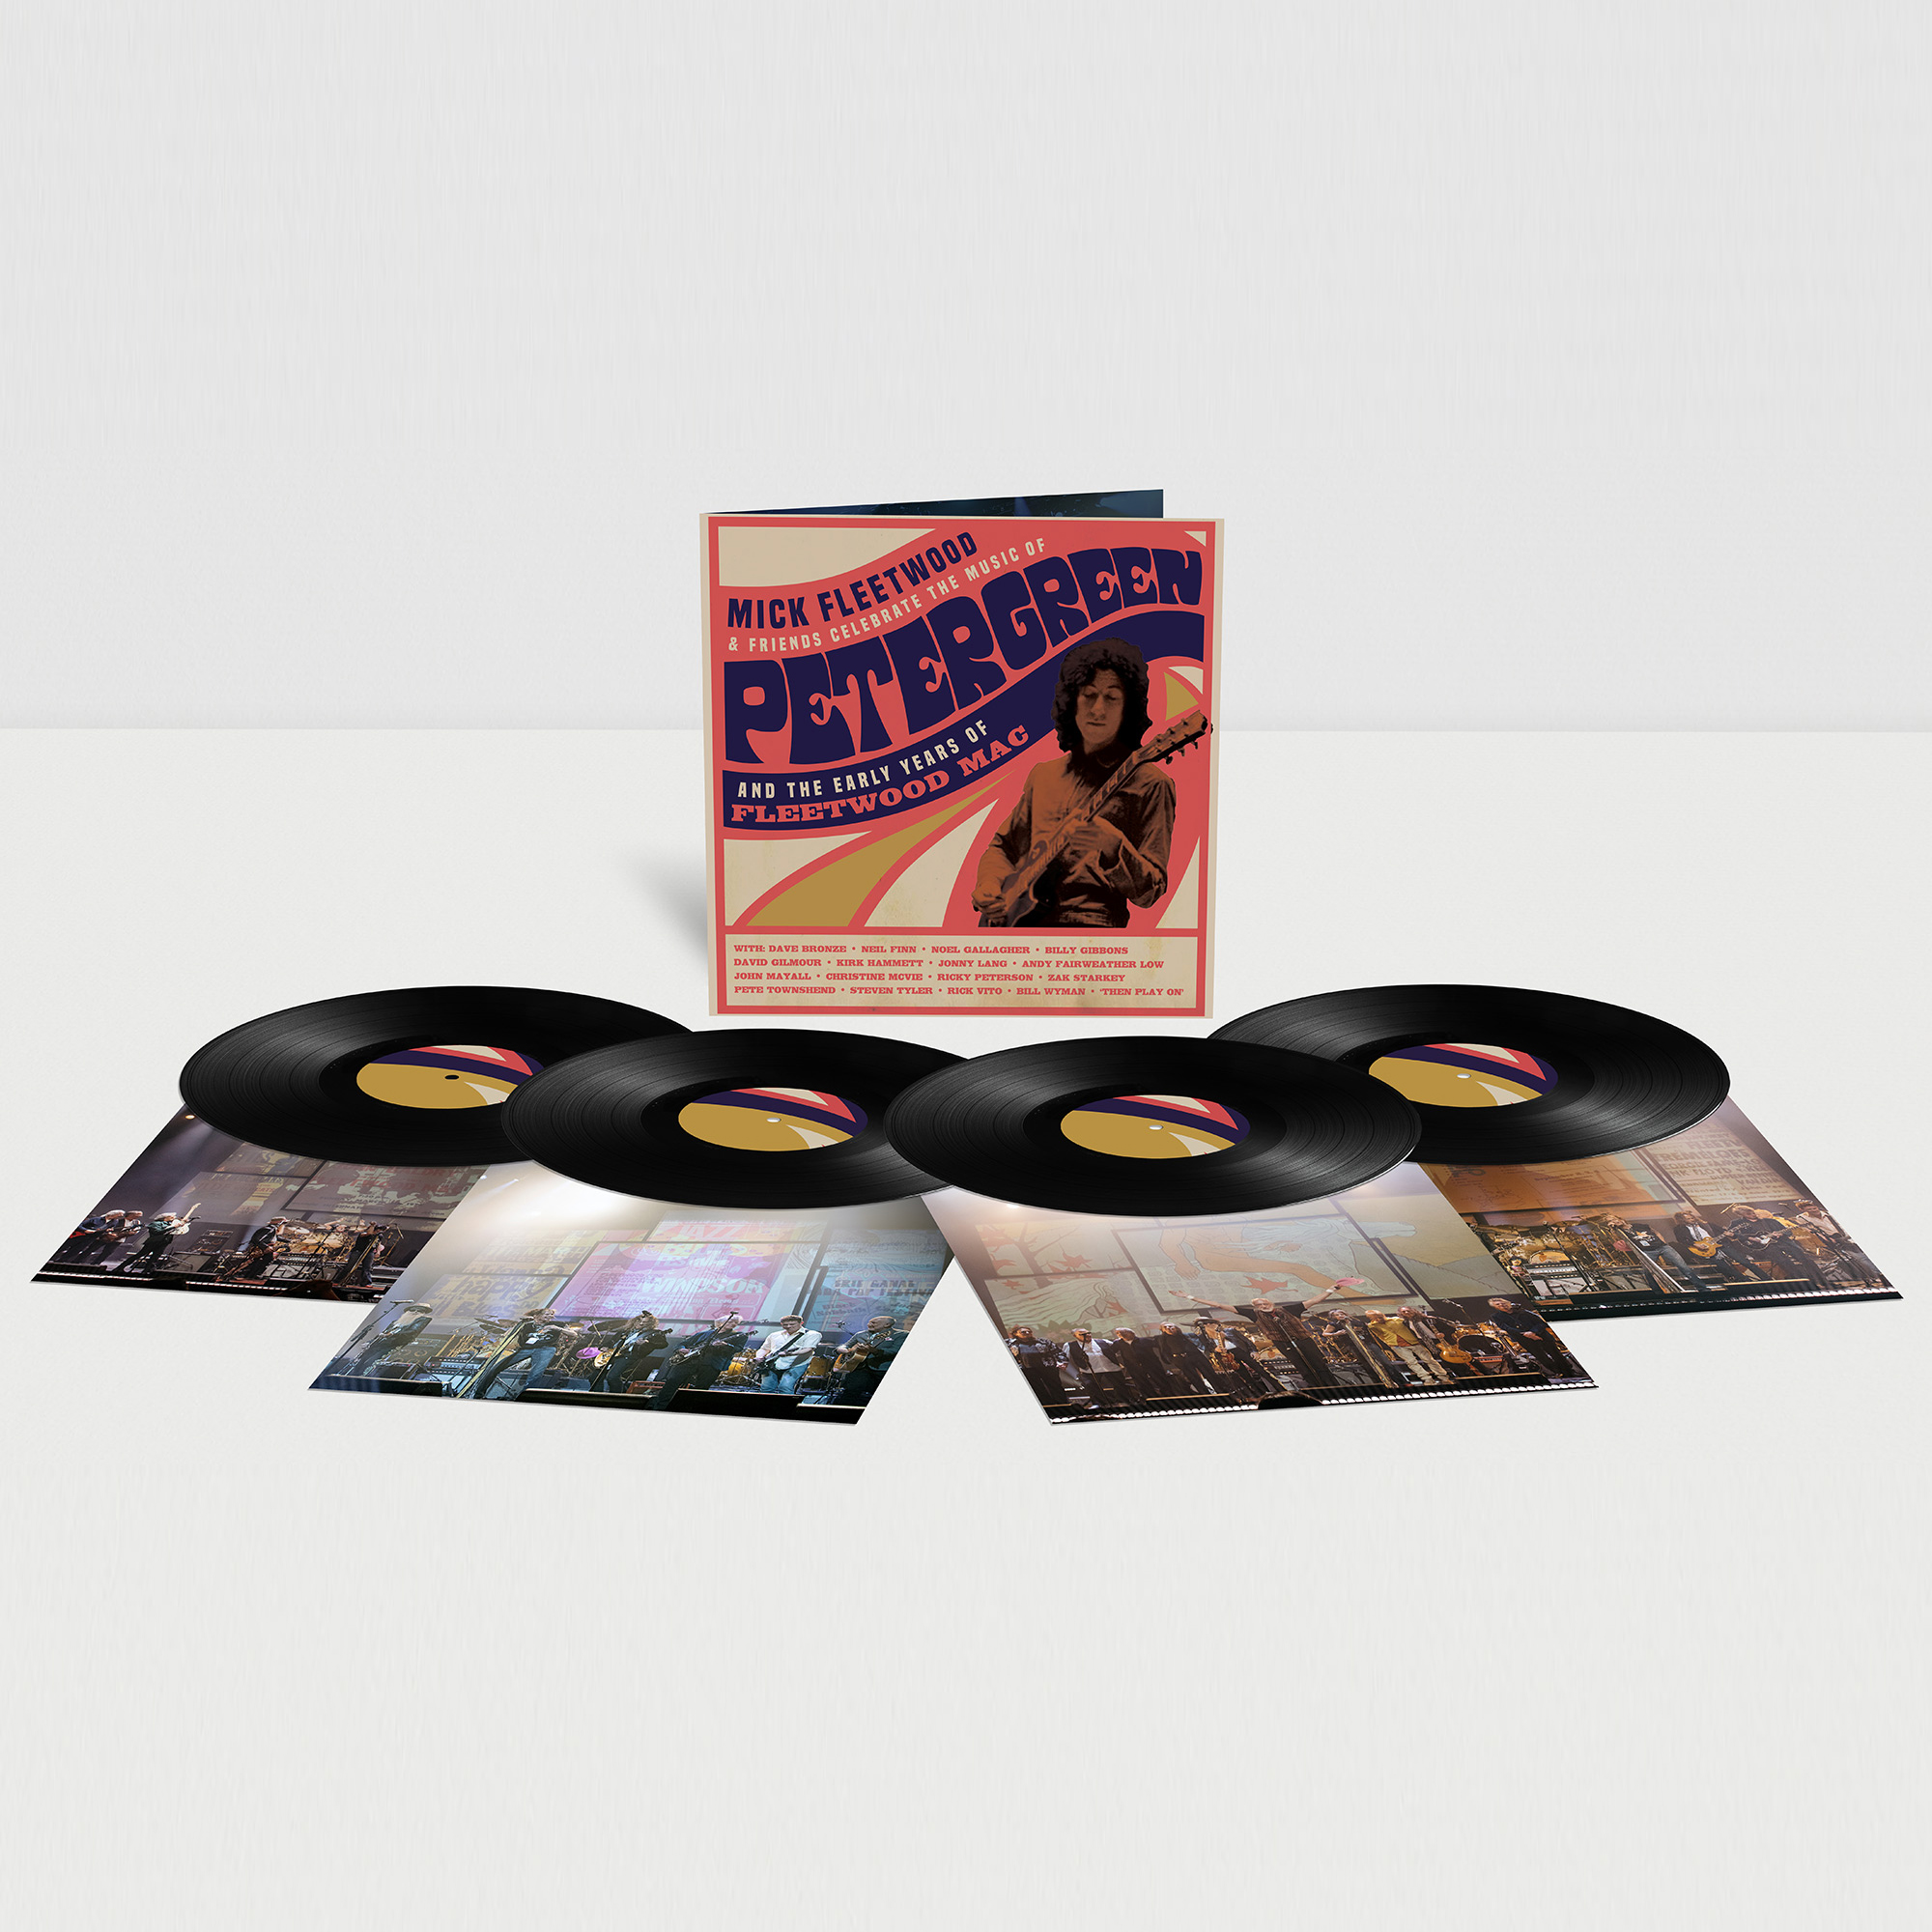 Buy Online Mick Fleetwood & Friends Celebrate The Music Of Peter Green And The Early Years Of Fleetwood Mac - Quadruple Gatefold Vinyl